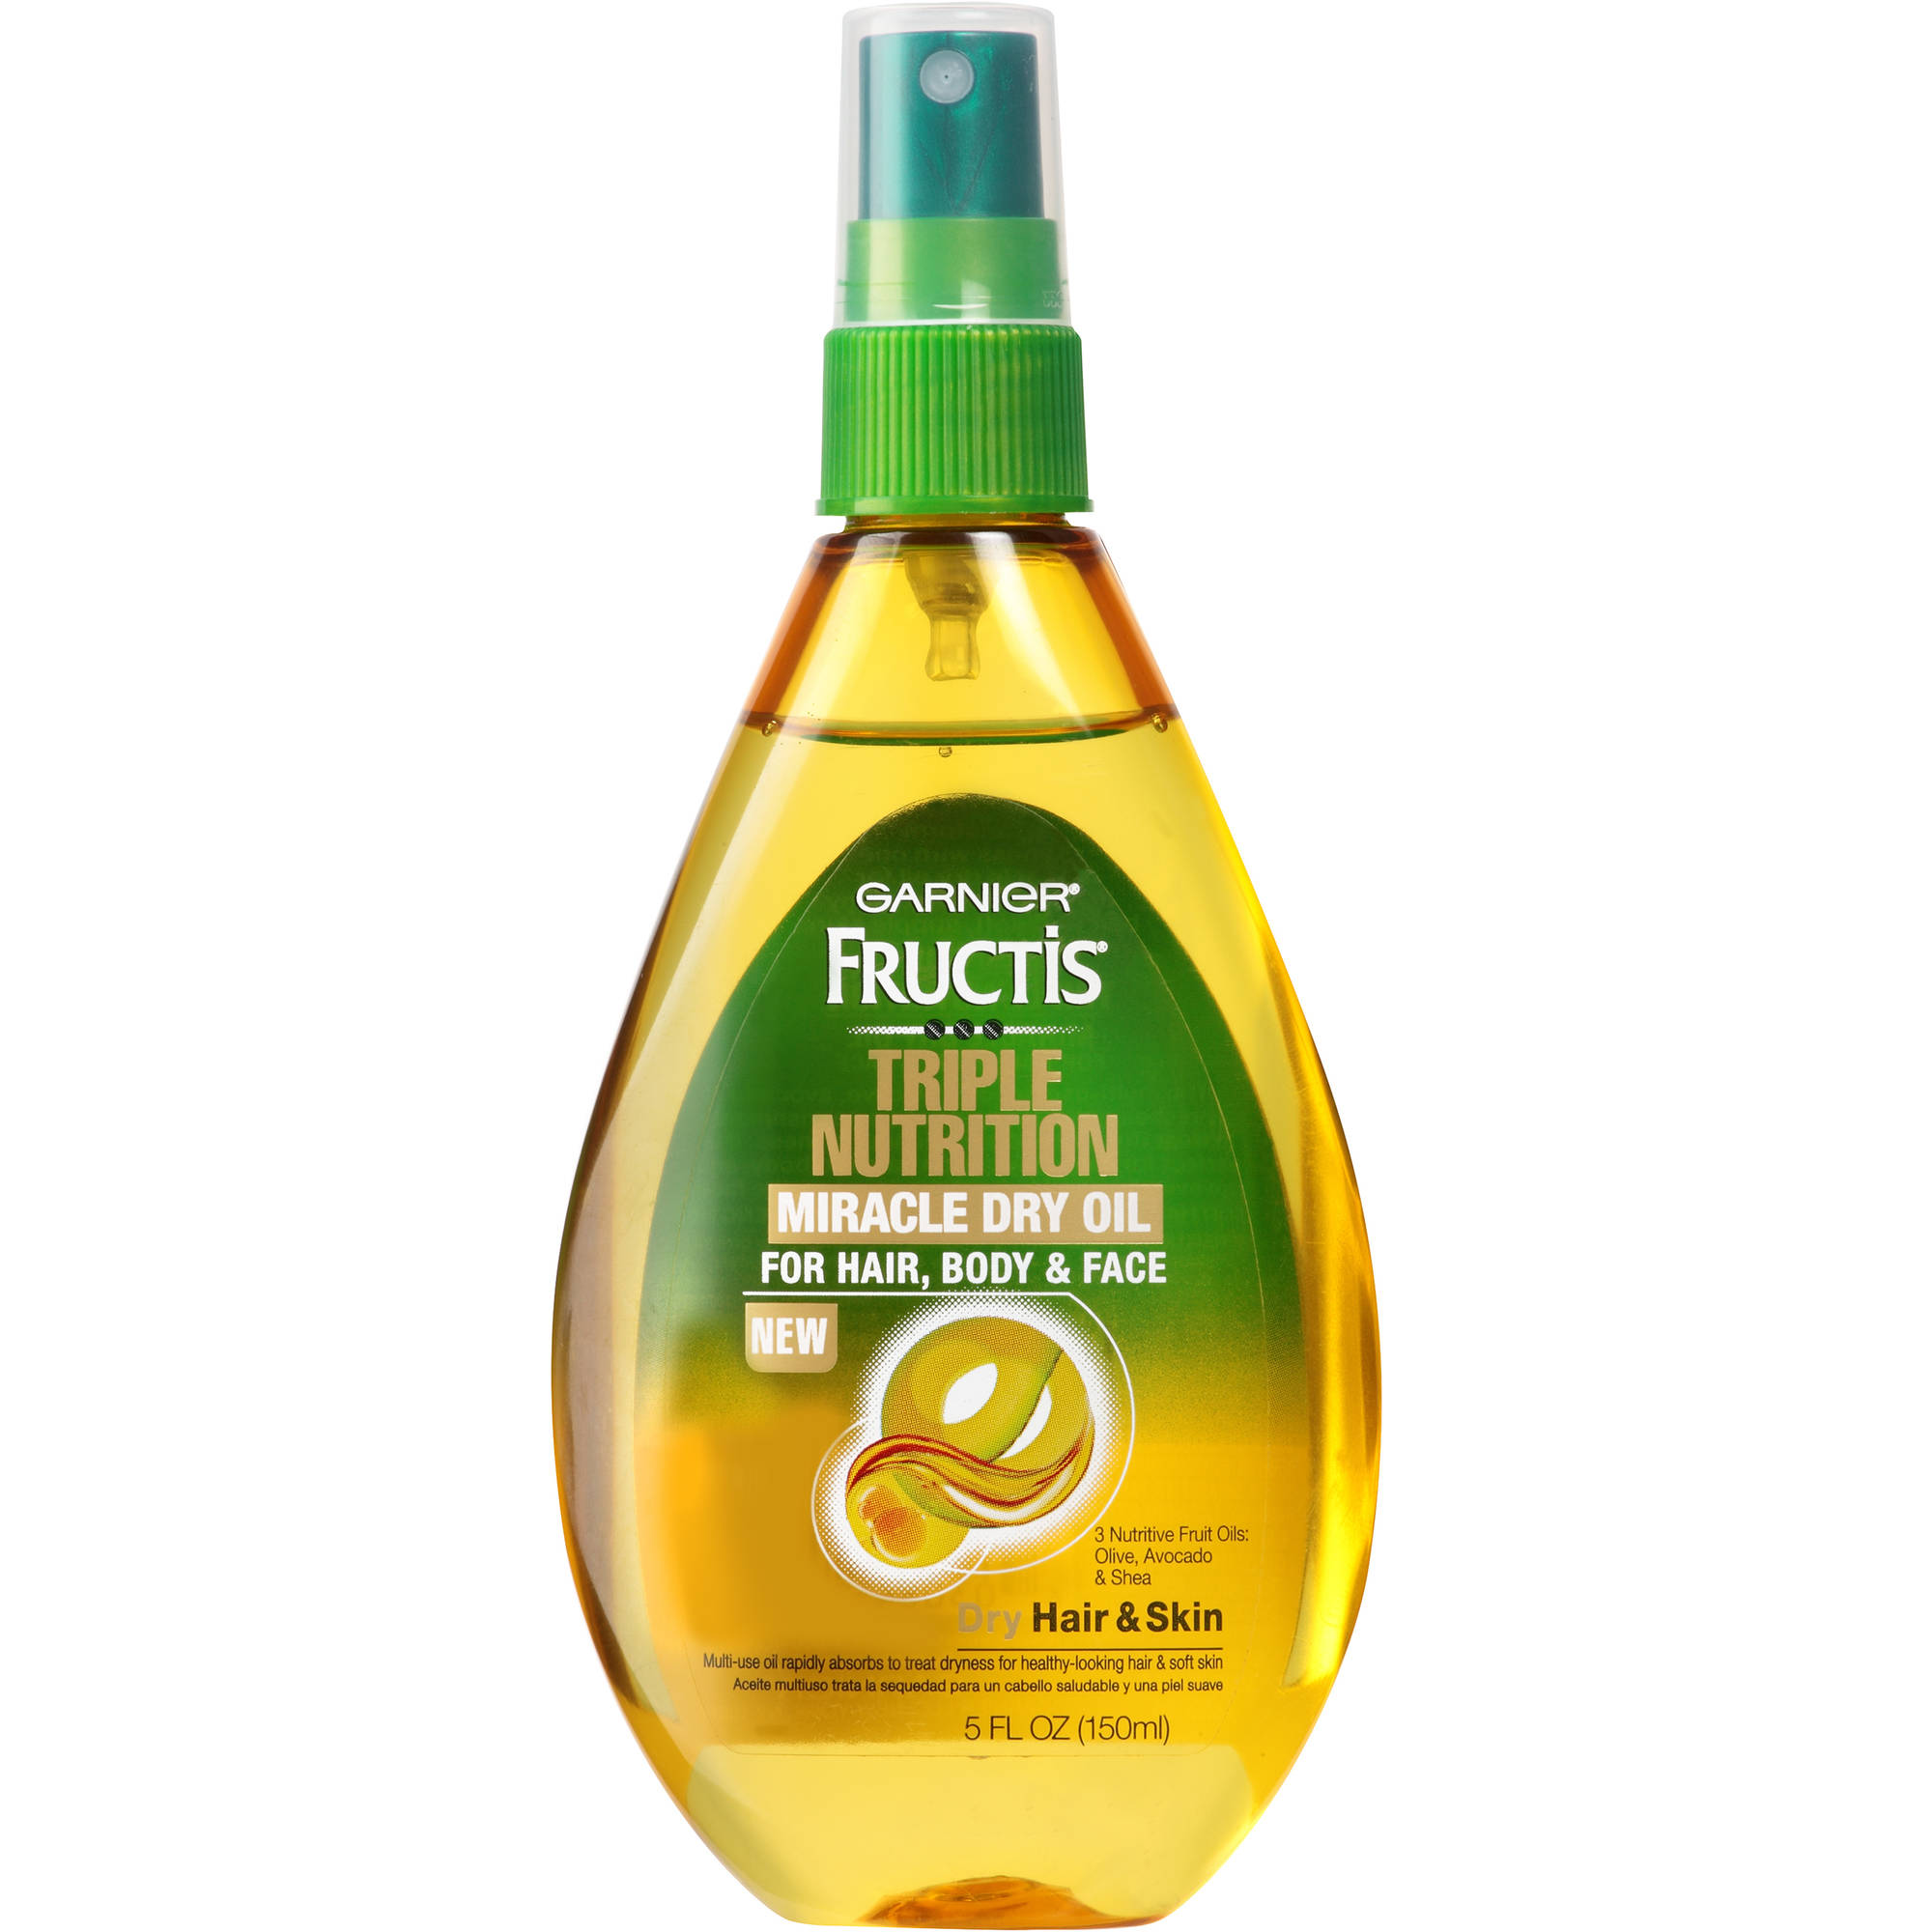 Garnier Fructis Triple Nutrition Miracle Dry Oil for Hair, Body & Face, 5 fl oz